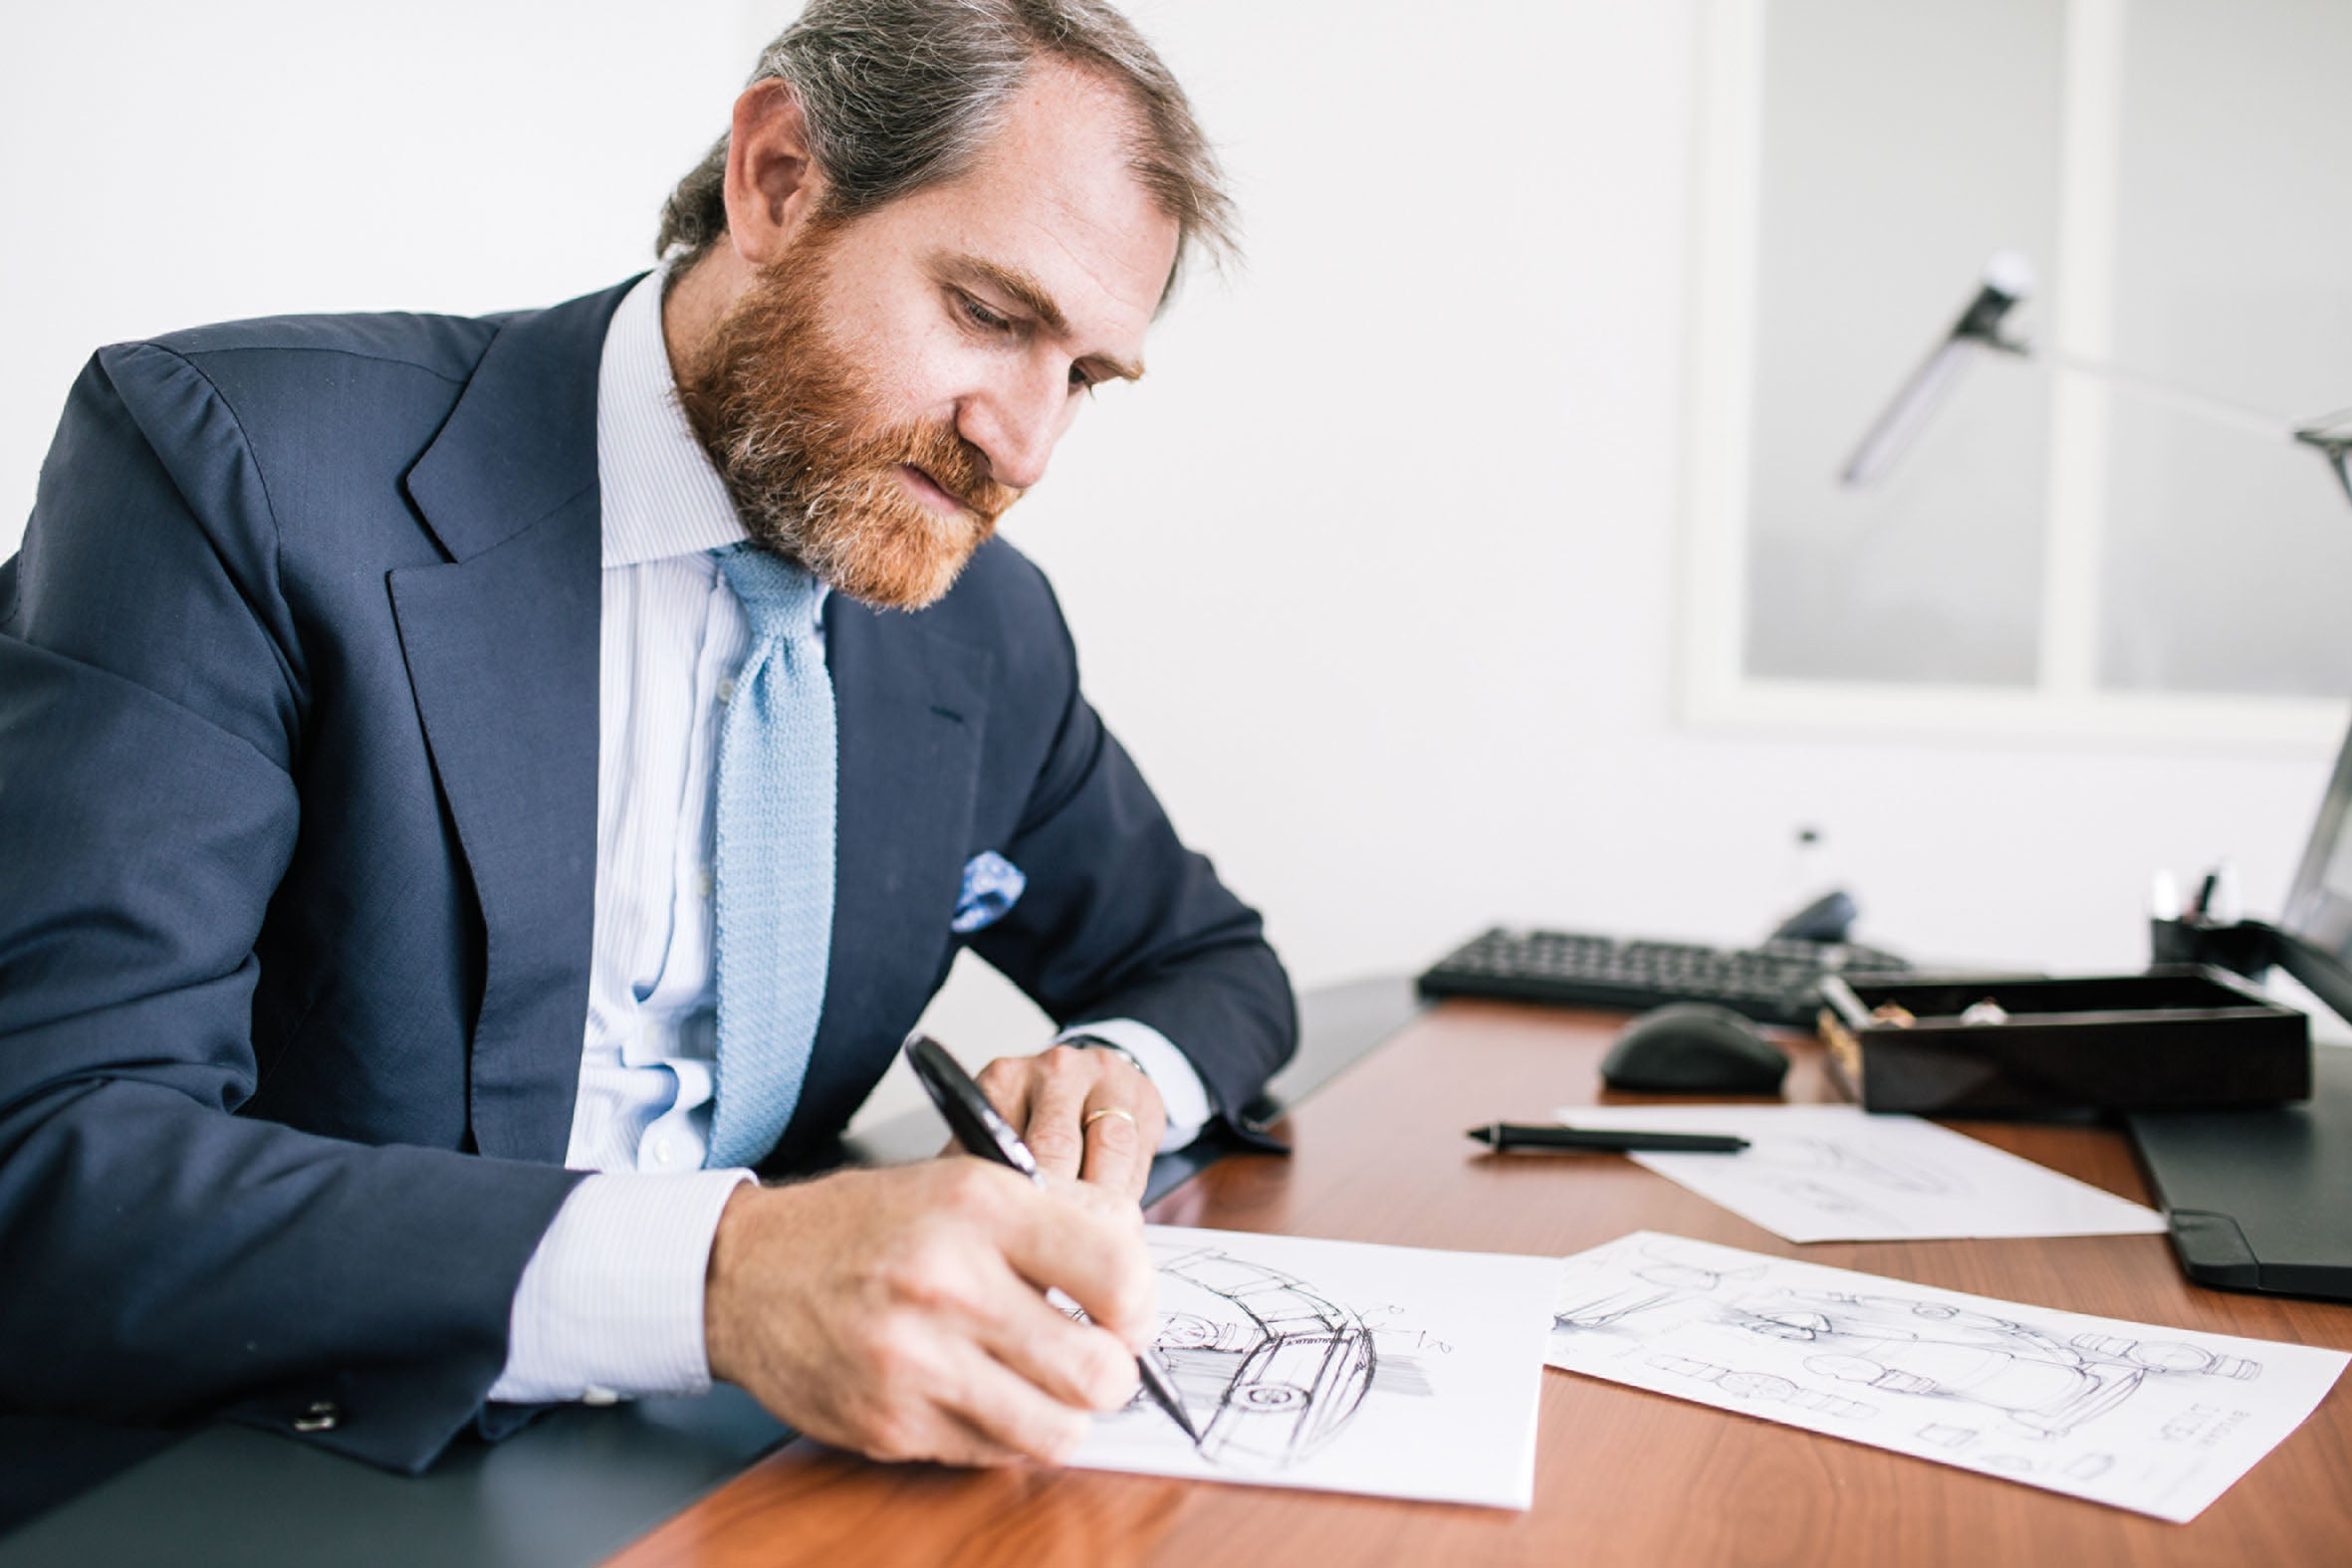 Fabrizio Buonamassa Stigliani drawing in The Balance of Symmetry and Asymmetry in Dial Design for A Collected Man London